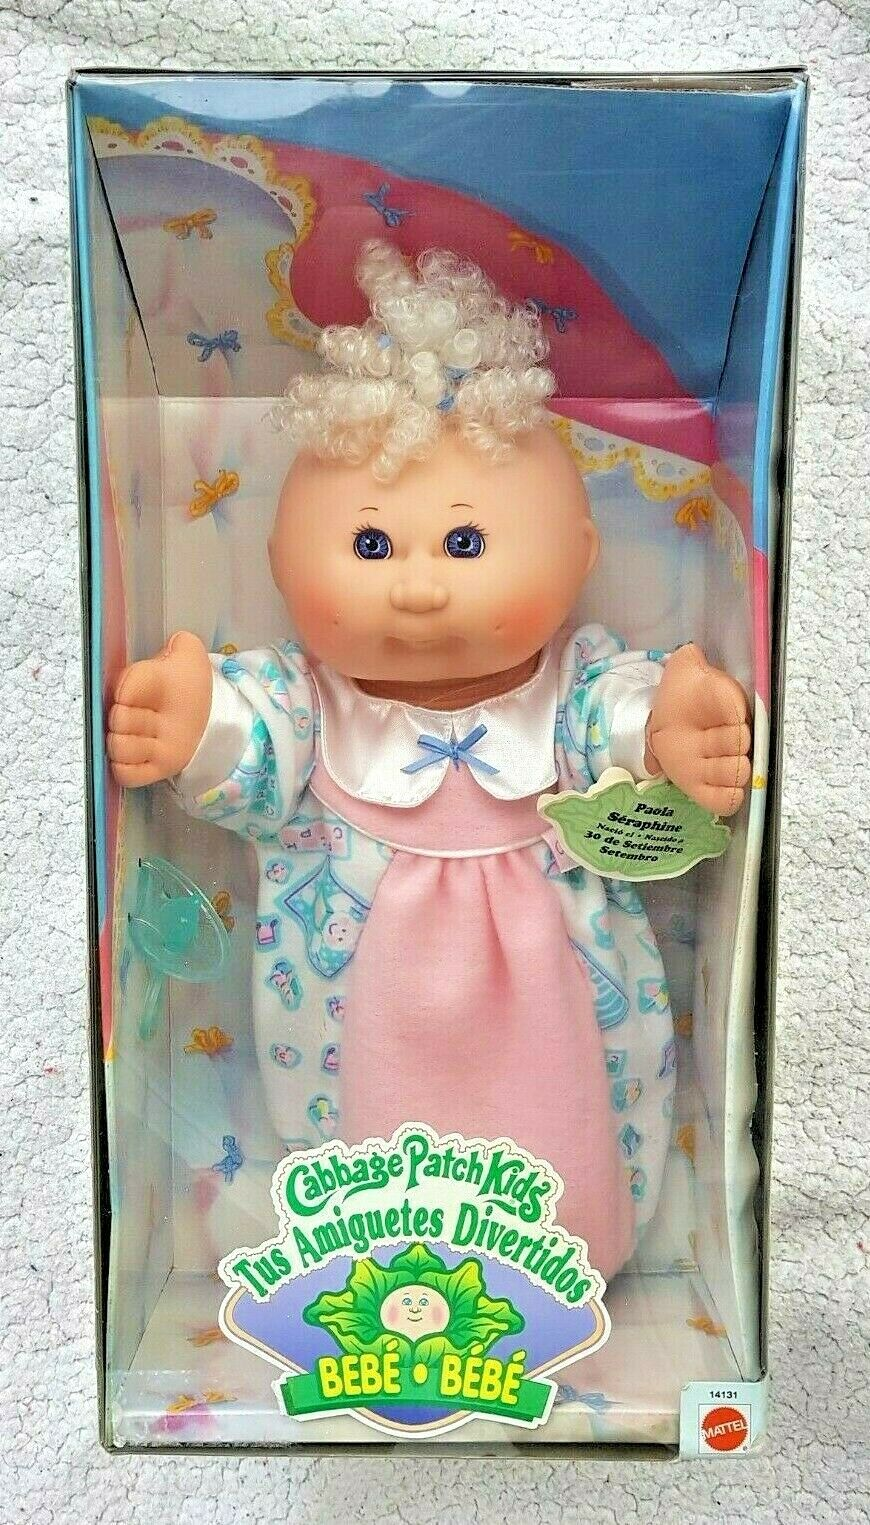 CABBAGE PATCH KIDS DOLL  BABY PAOLA (MUÑECA REPOLLO). BRAND NEW OLD STOCK, 1995